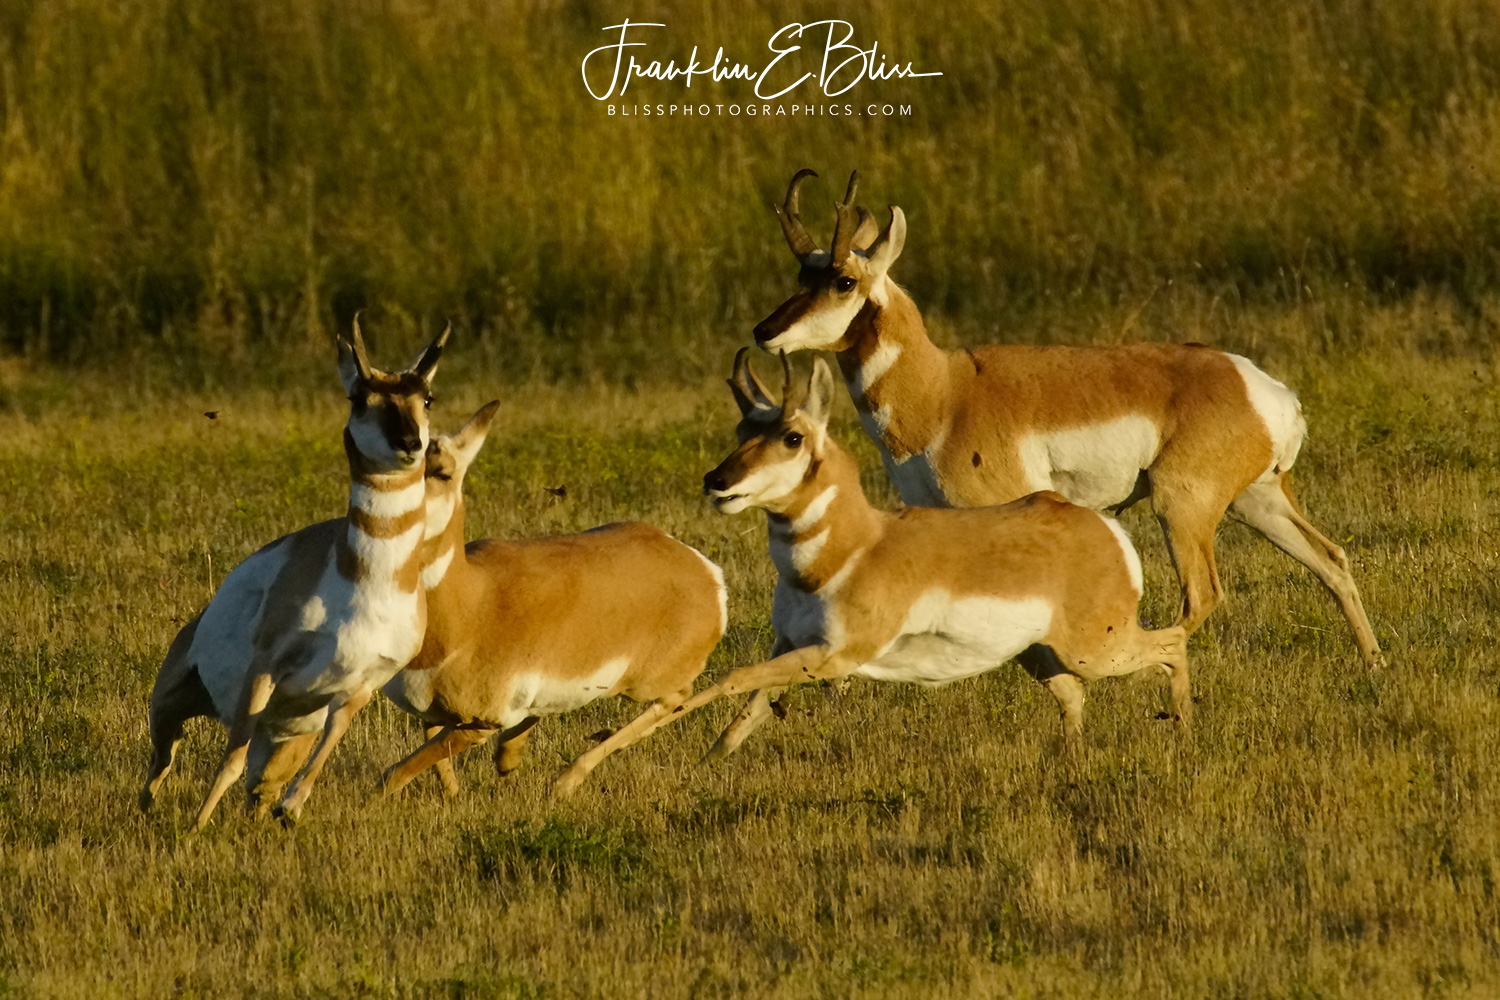 A Chase and Evasion During the Pronghorn Rut